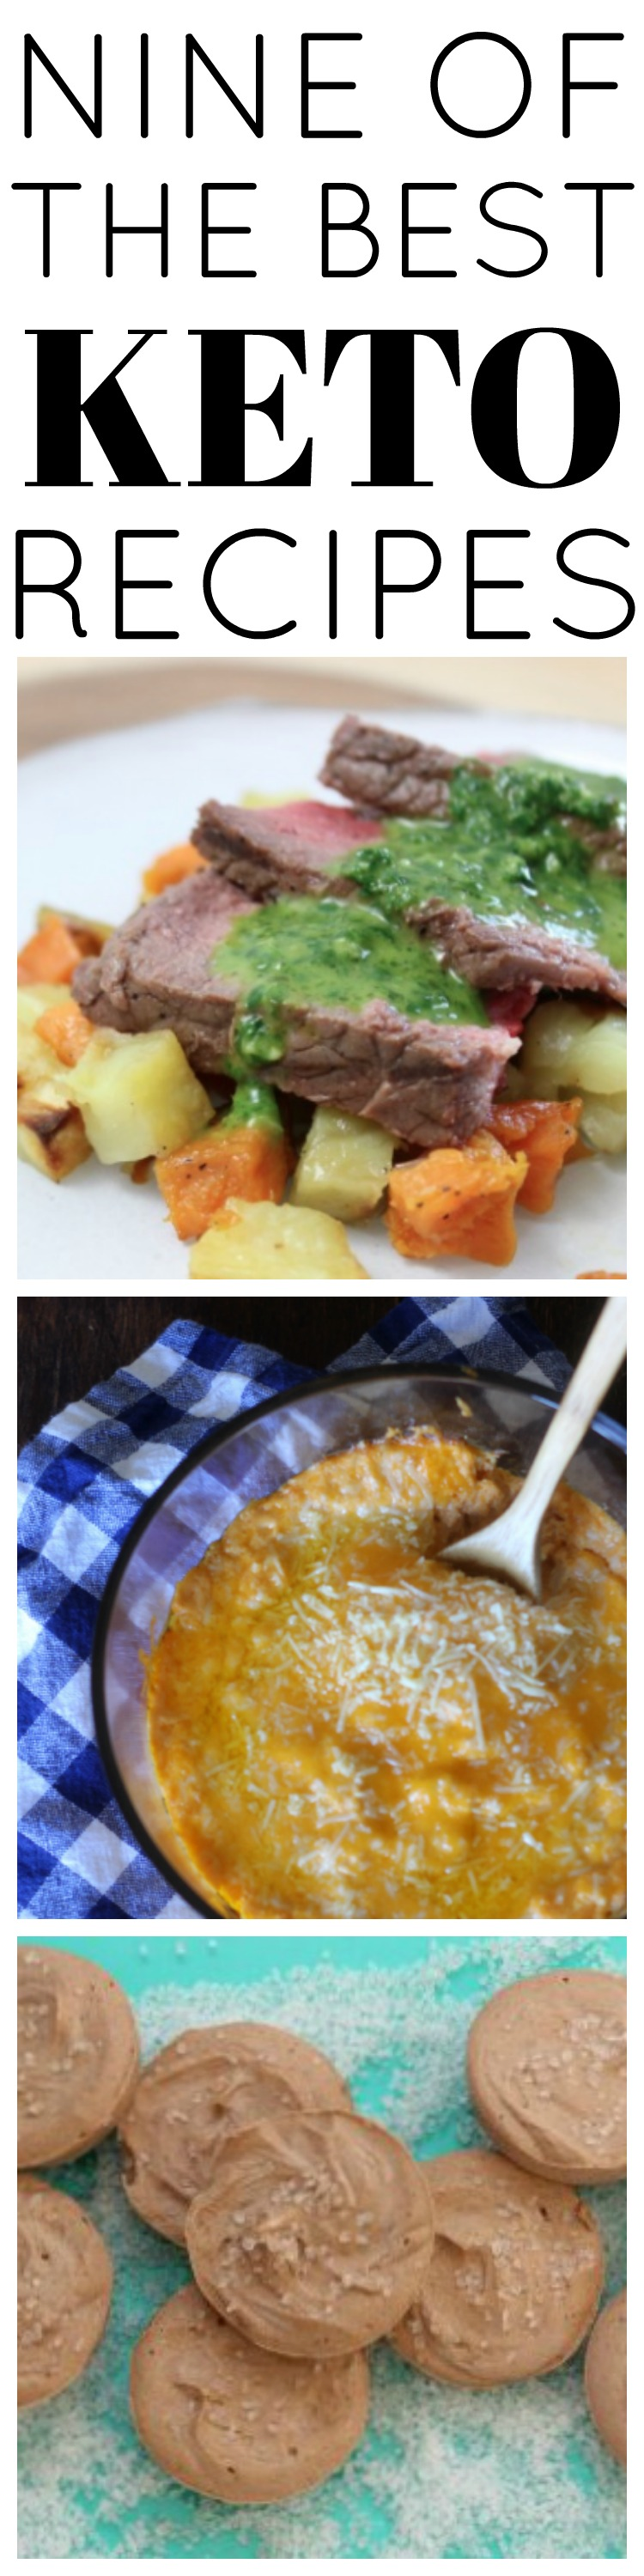 LOW CARB RECIPES, keto recipes